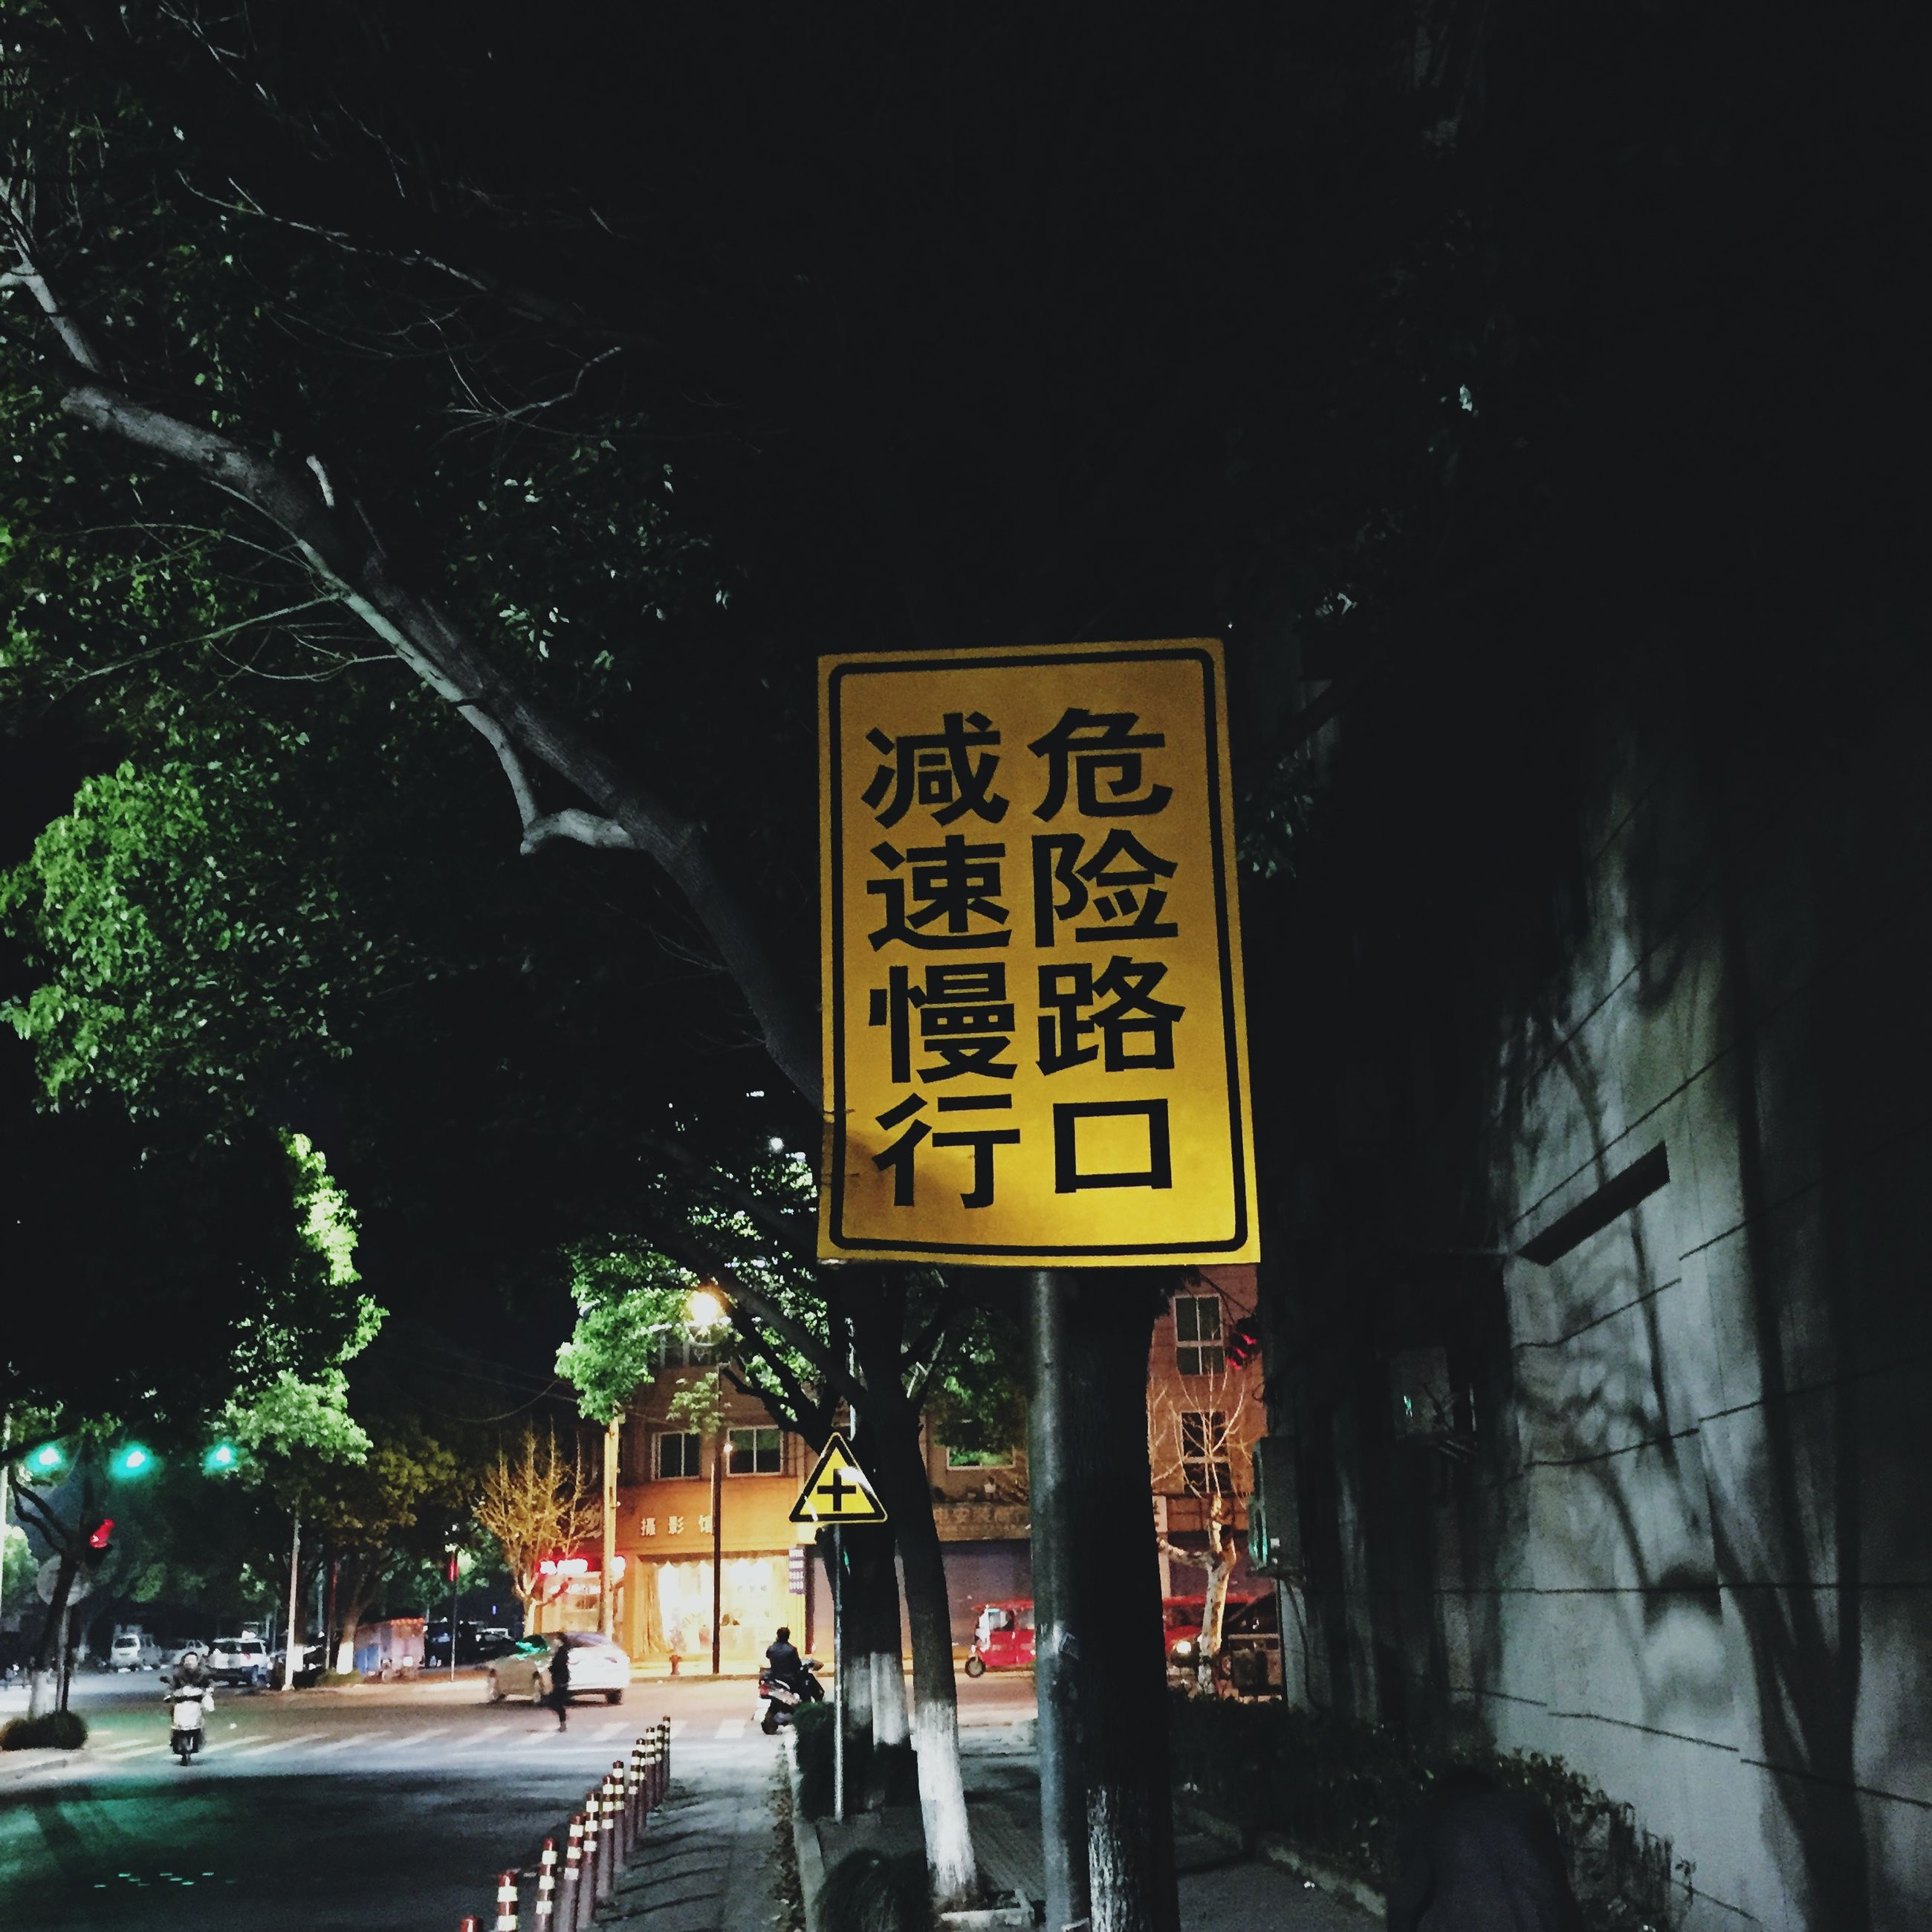 text, western script, illuminated, night, communication, information sign, sign, non-western script, information, street, tree, building exterior, built structure, capital letter, road sign, architecture, guidance, street light, outdoors, city